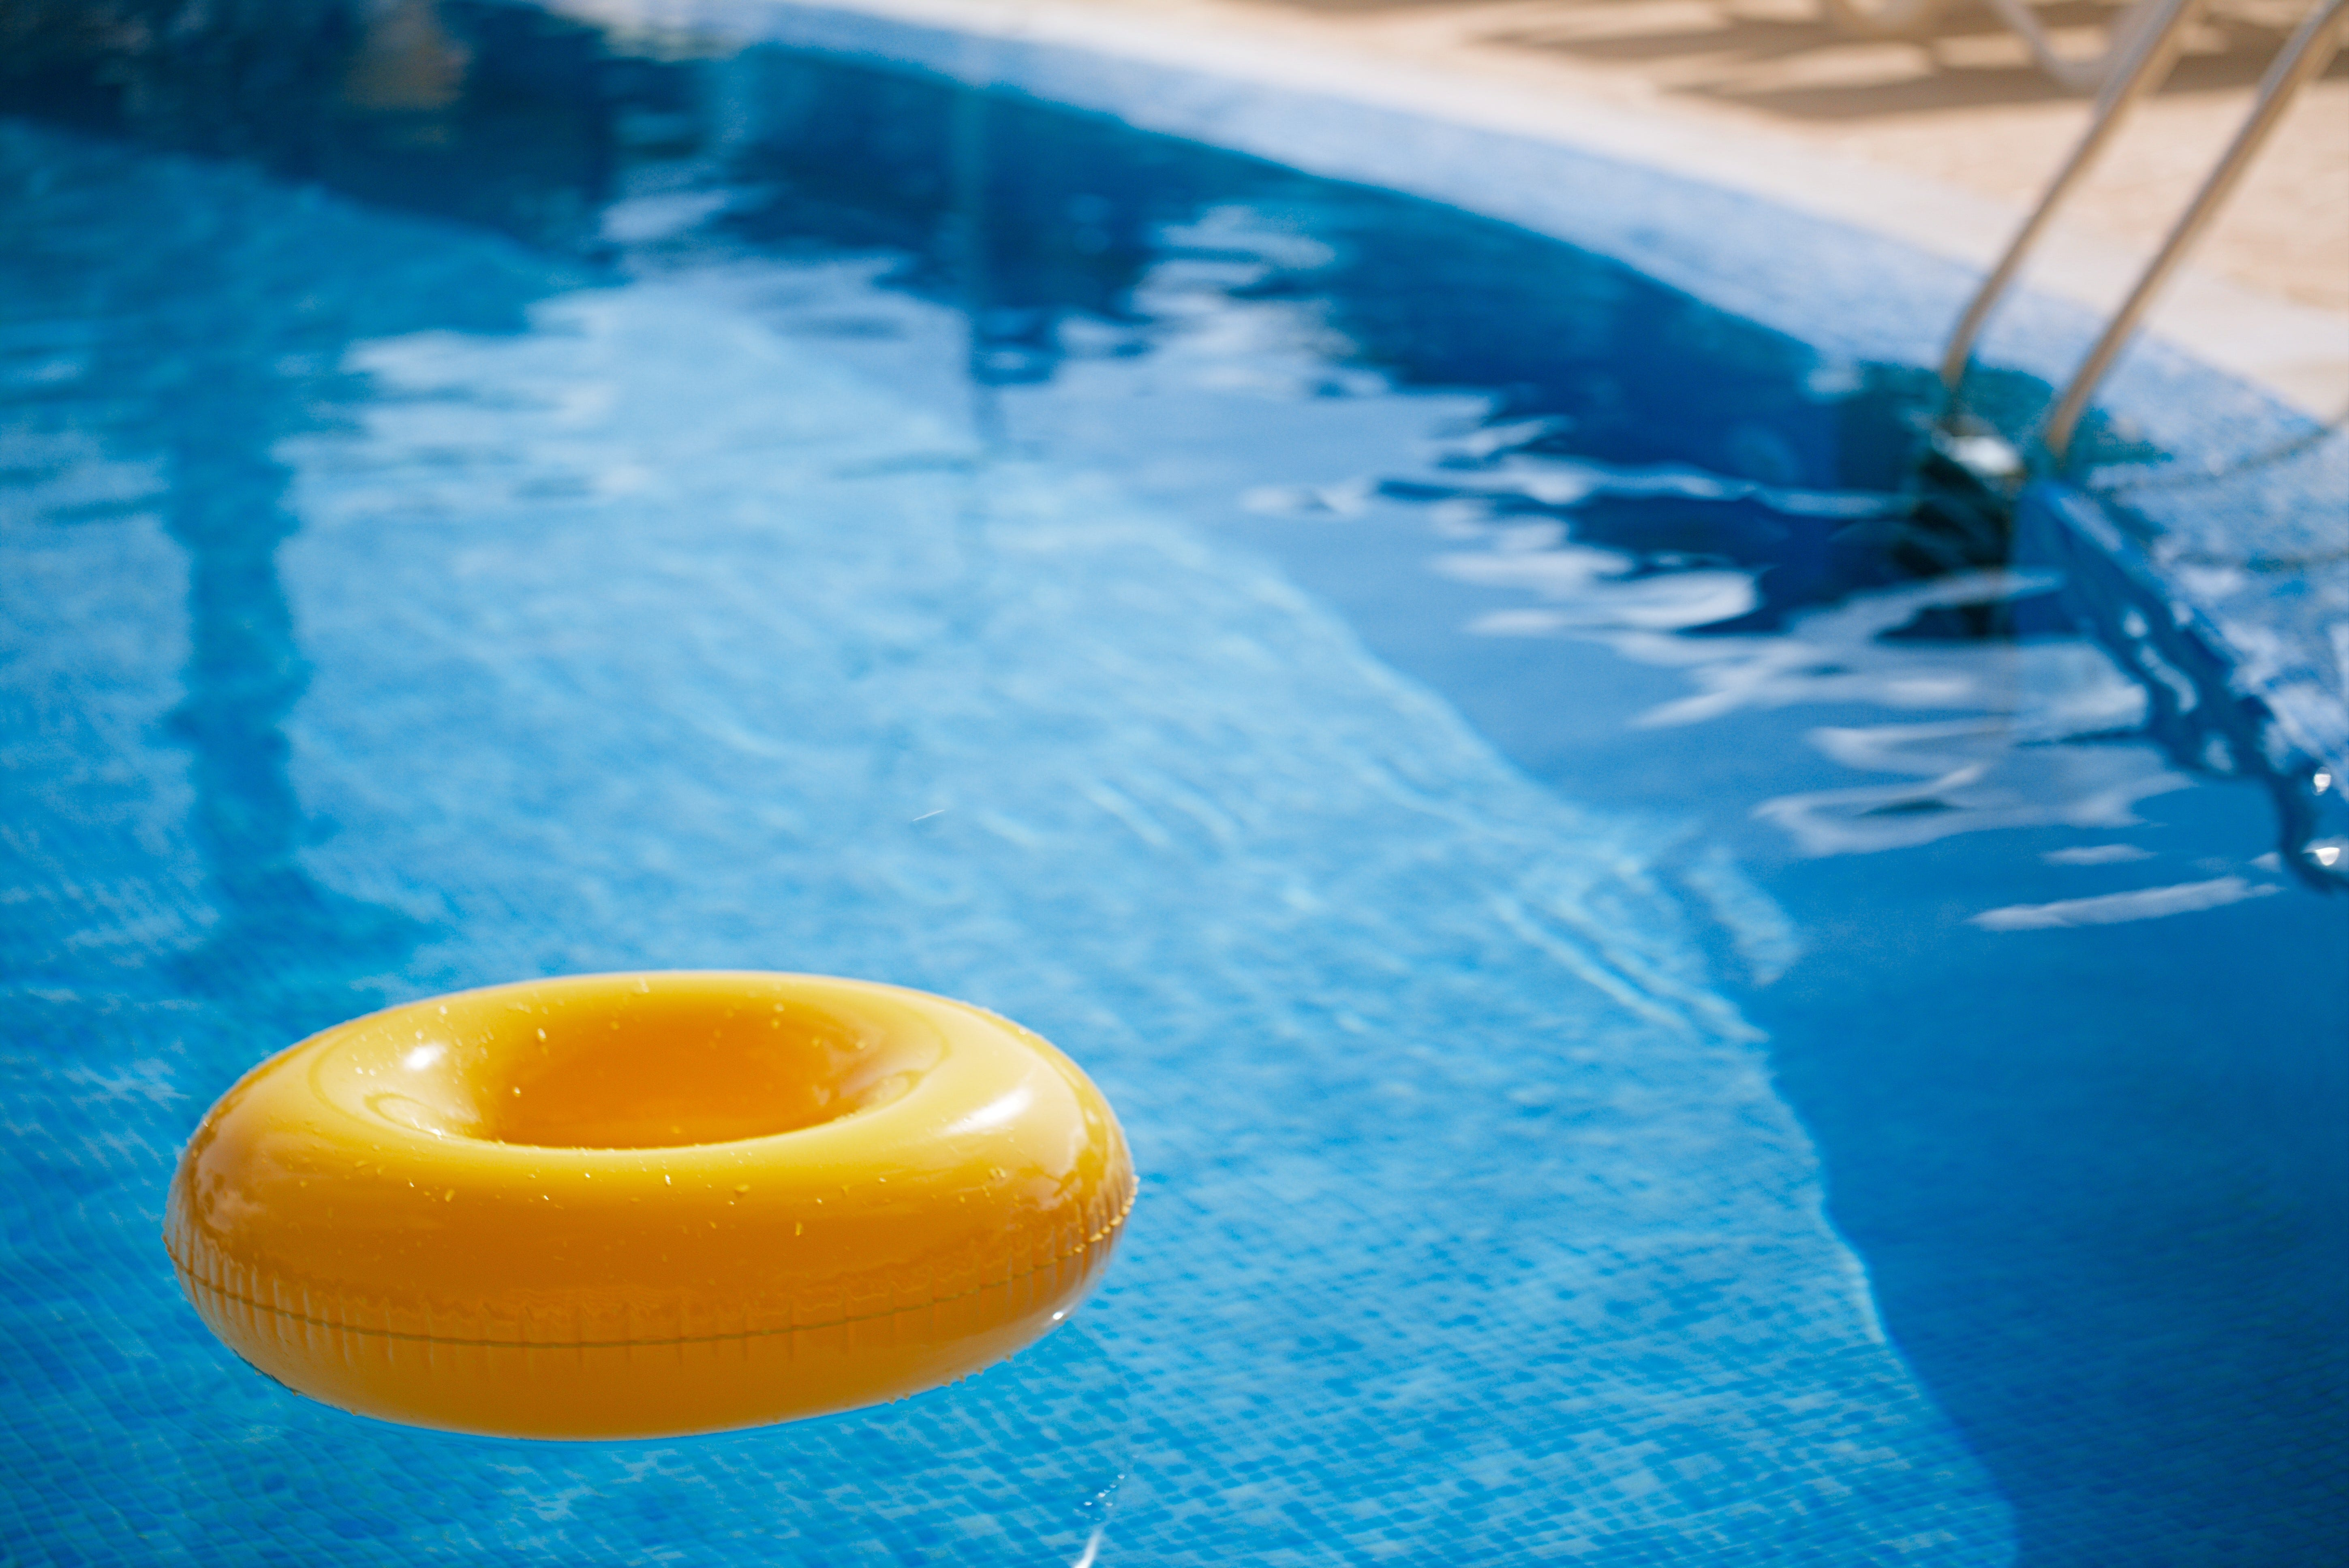 Child drownings spike in Maricopa, Pinal counties as COVID-19 keeps families at home